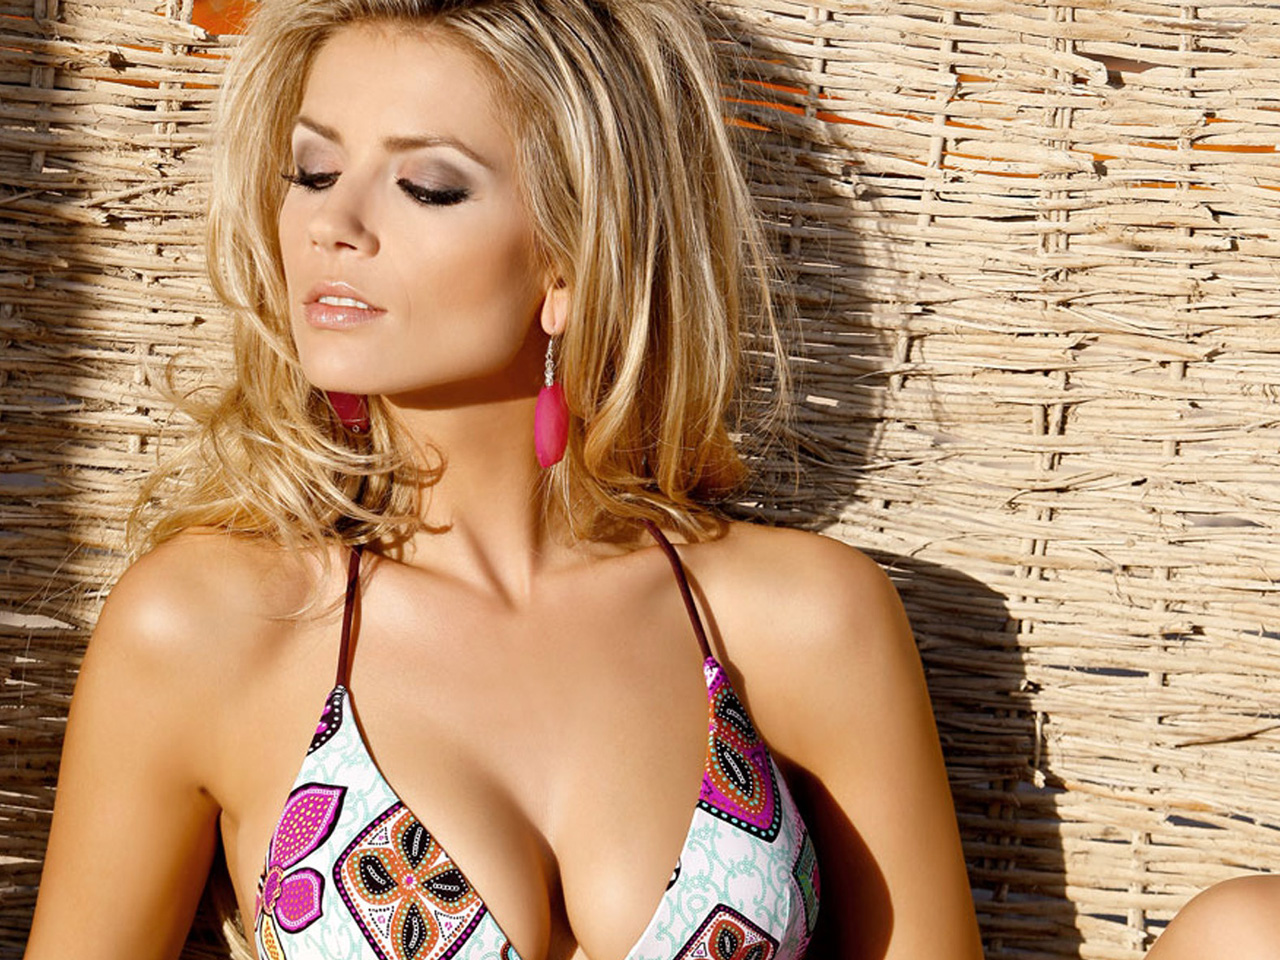 Bikini tops come in different styles and cuts, including a halter-style neck ...